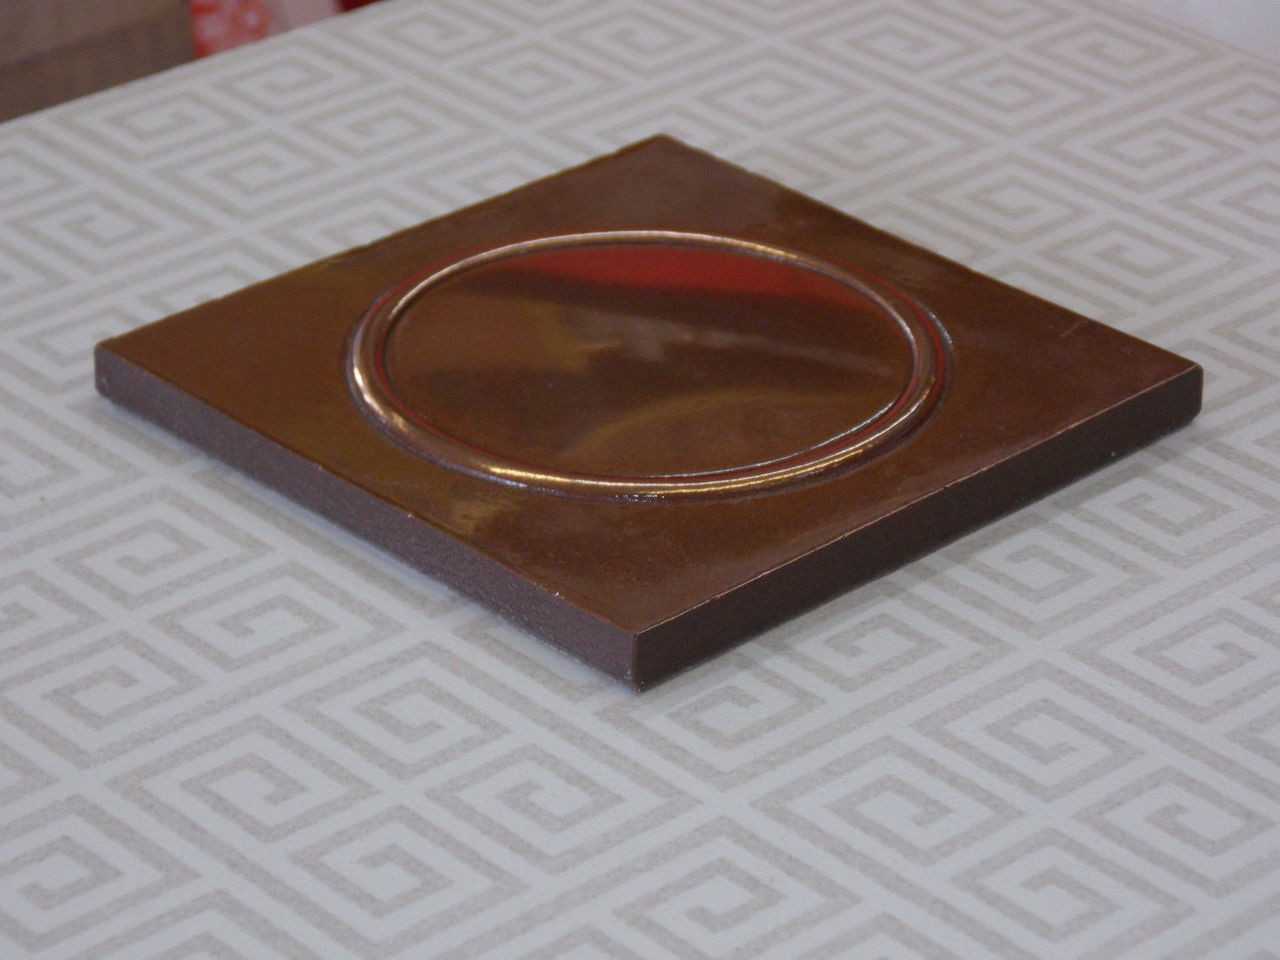 4x4 Deco Polished Copper Metal Look Rqdc0047003001